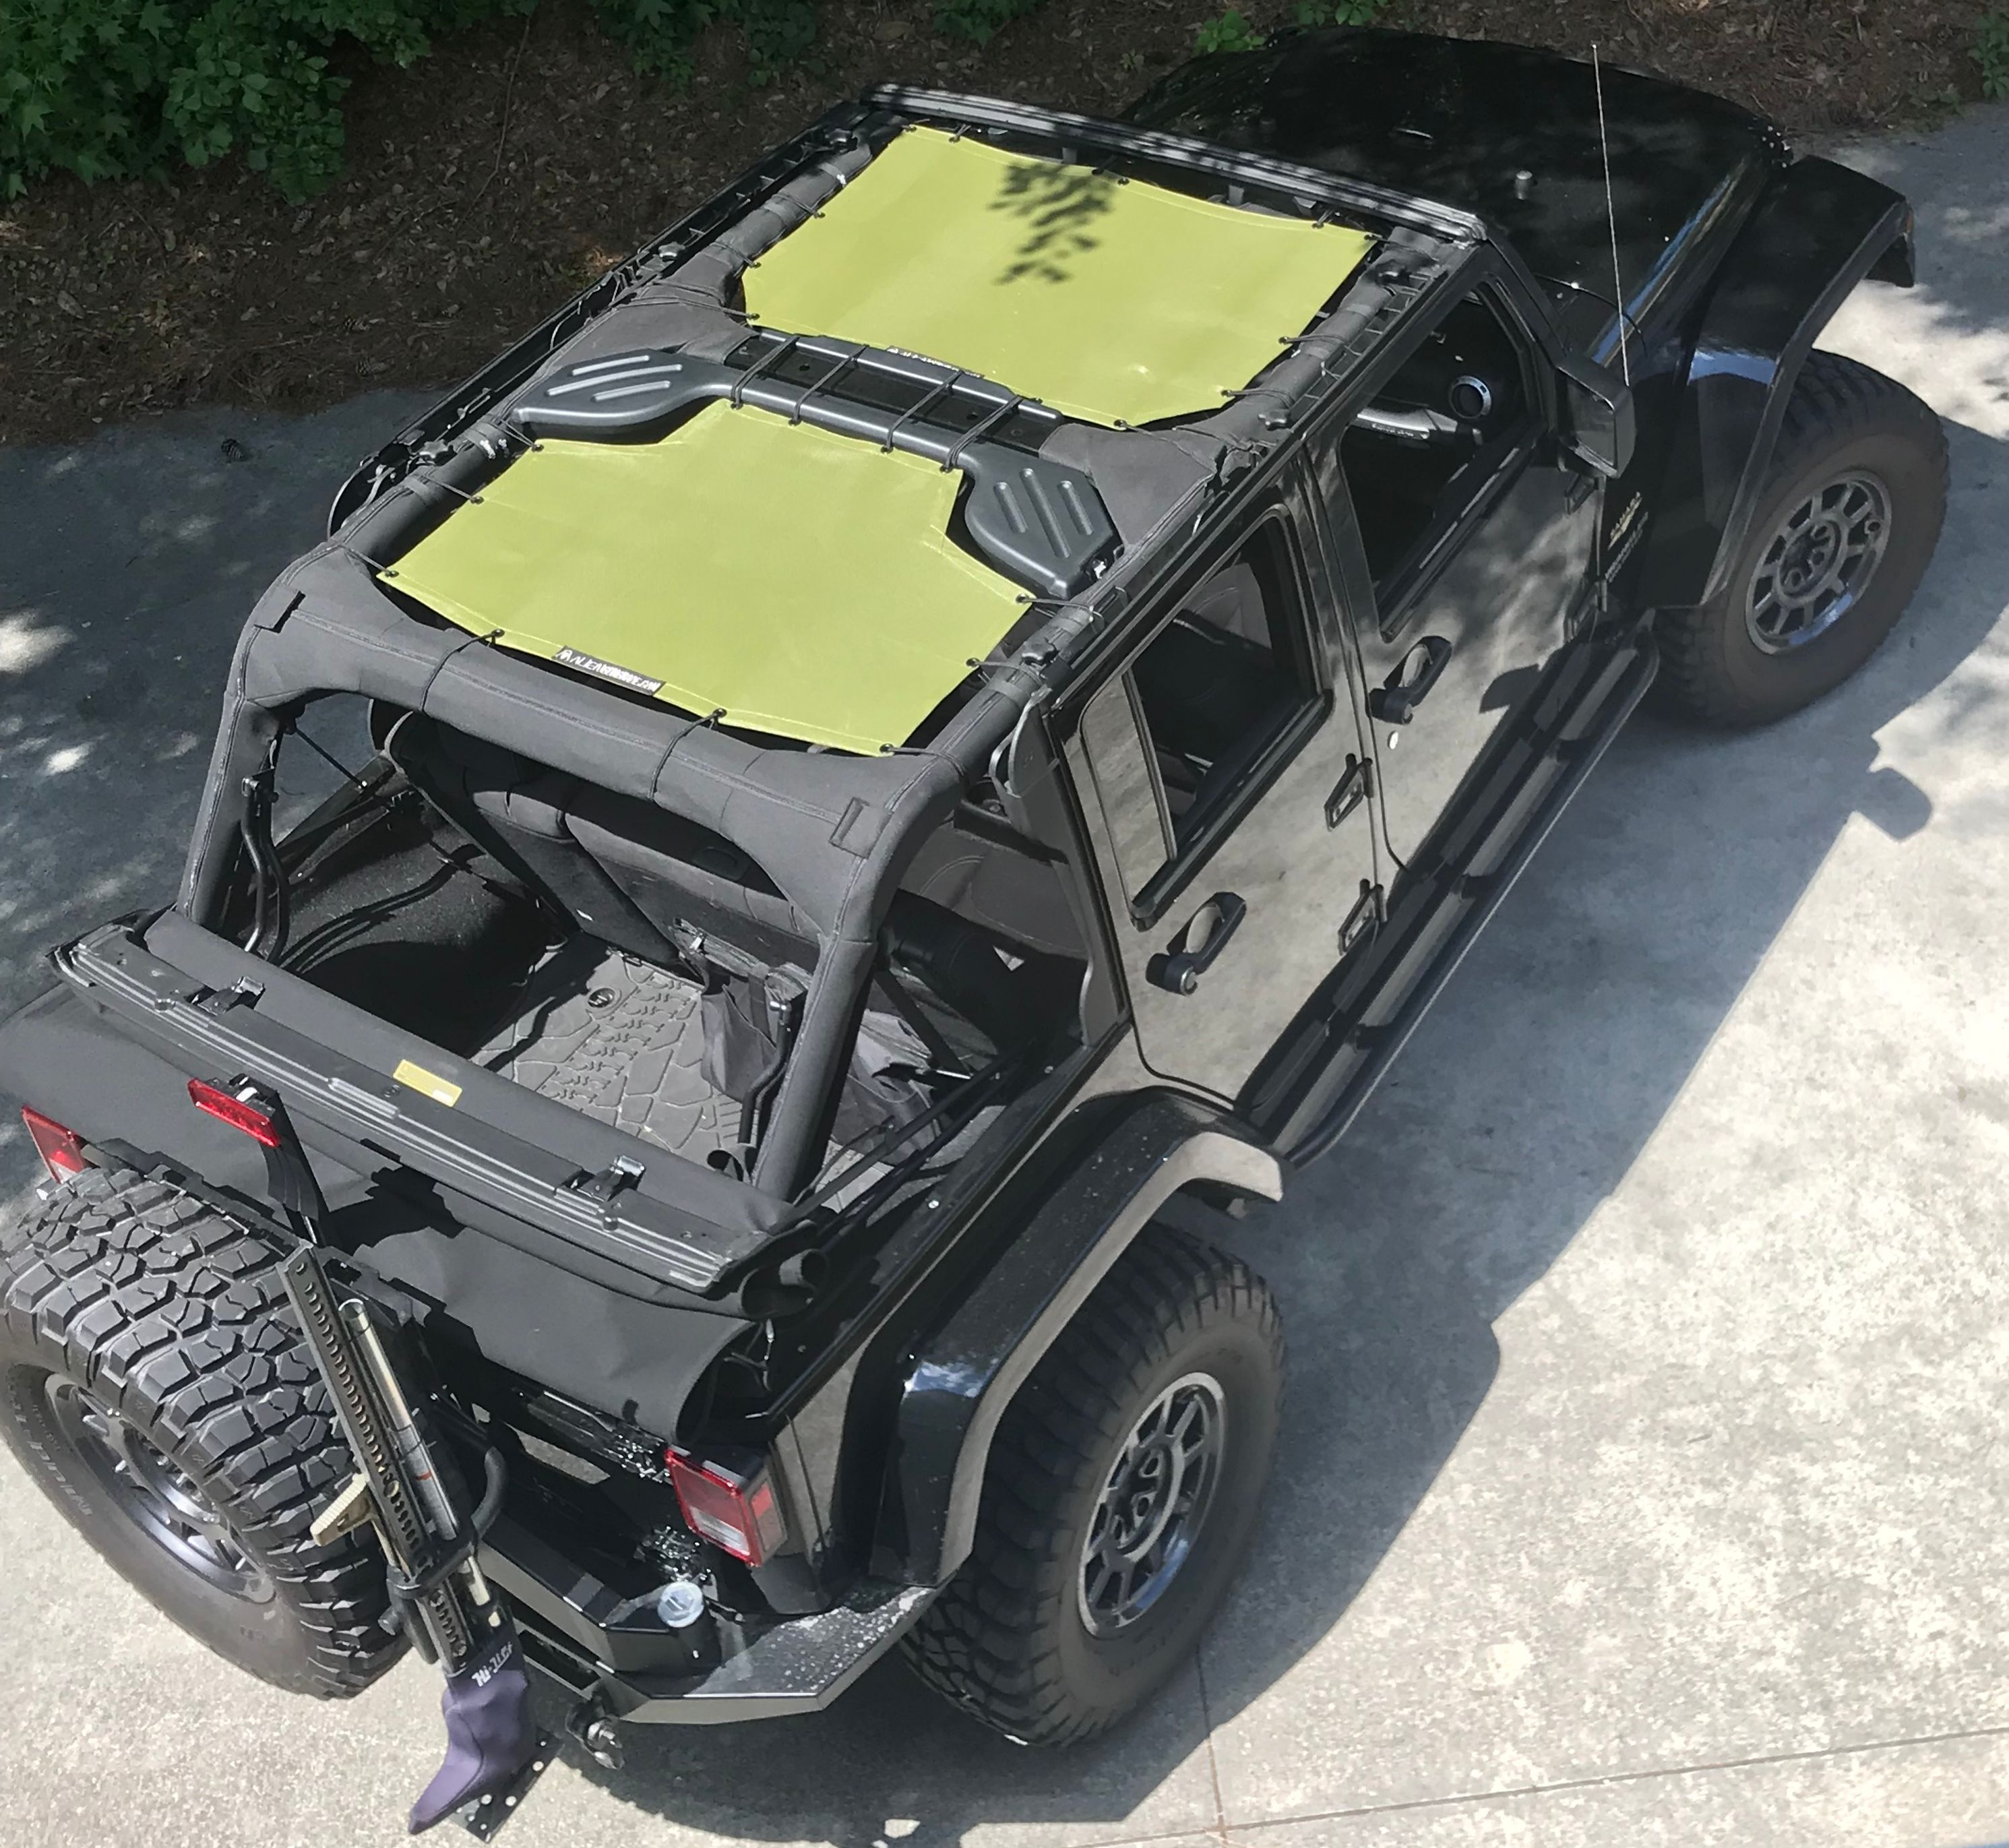 13fe67ec7ed Mesh · Shades · Jeep Jl · Green · Cover · 2 piece front and rear combo Alien  Sunshade shown in Tank Green on a Black 4